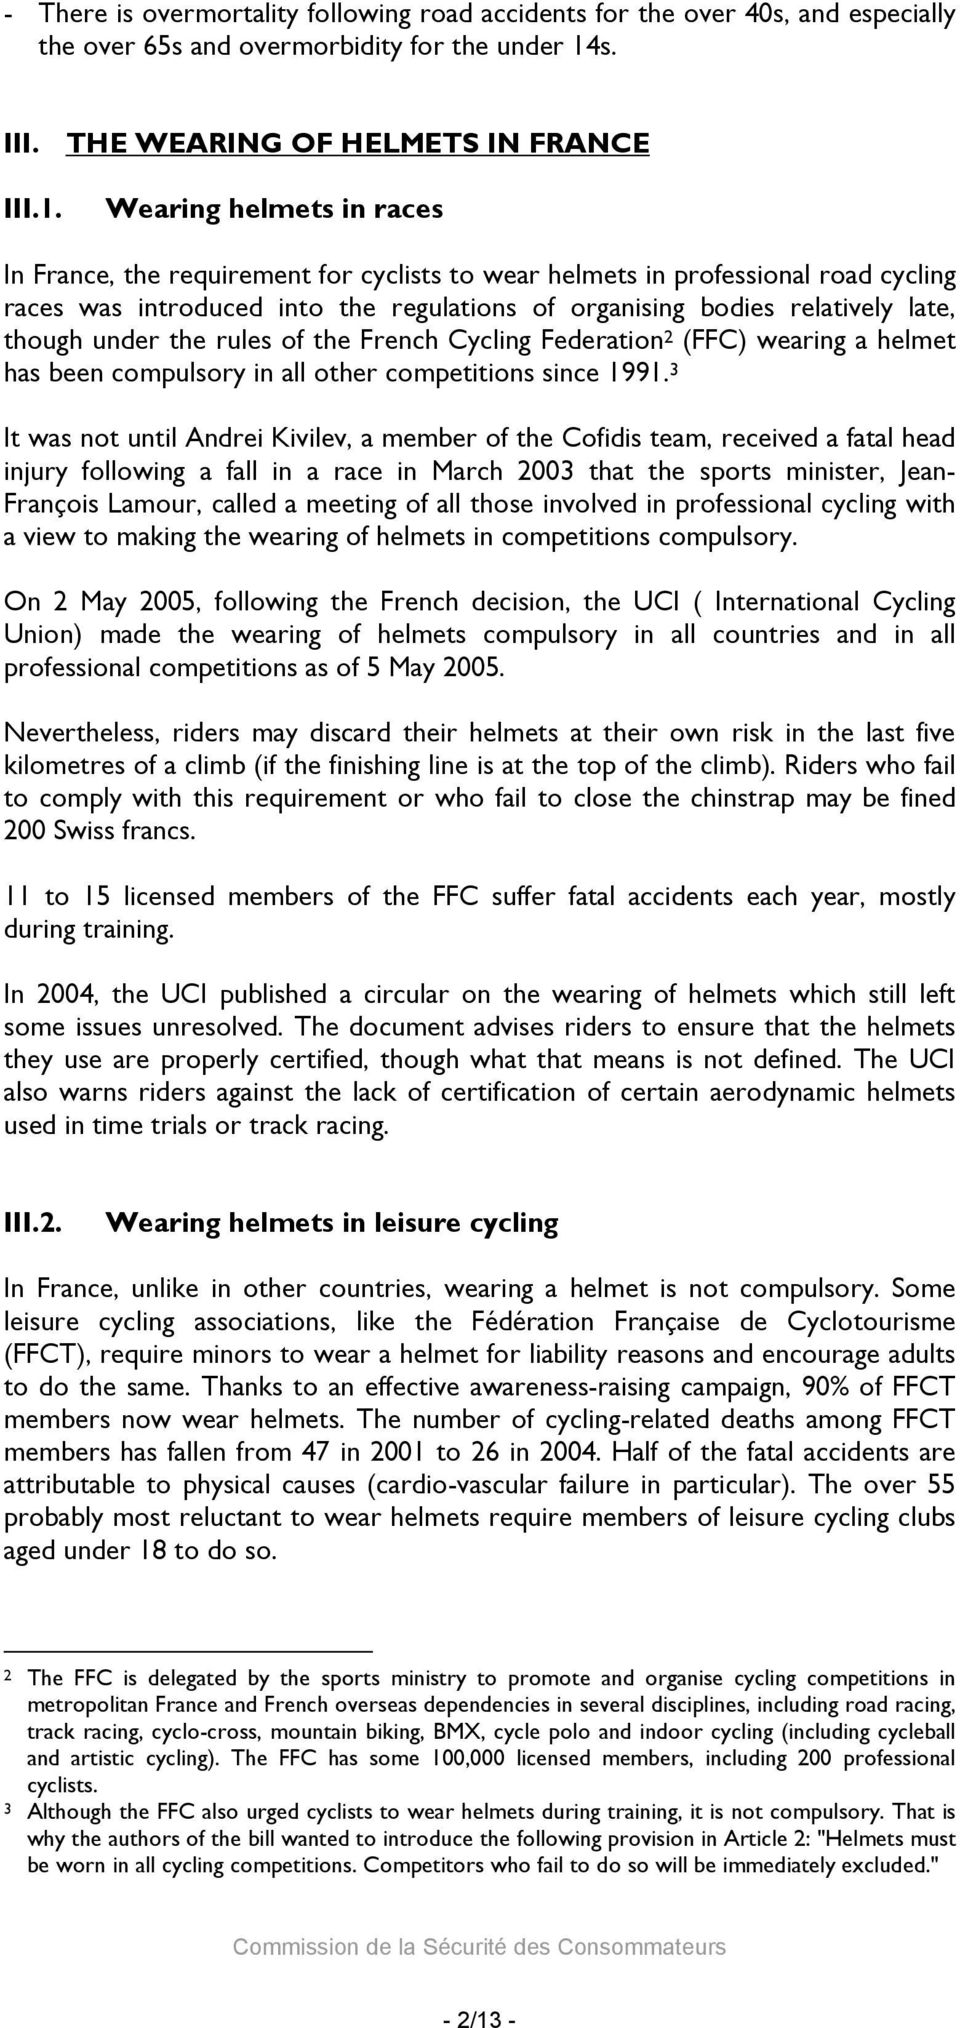 Wearing helmets in races In France, the requirement for cyclists to wear helmets in professional road cycling races was introduced into the regulations of organising bodies relatively late, though